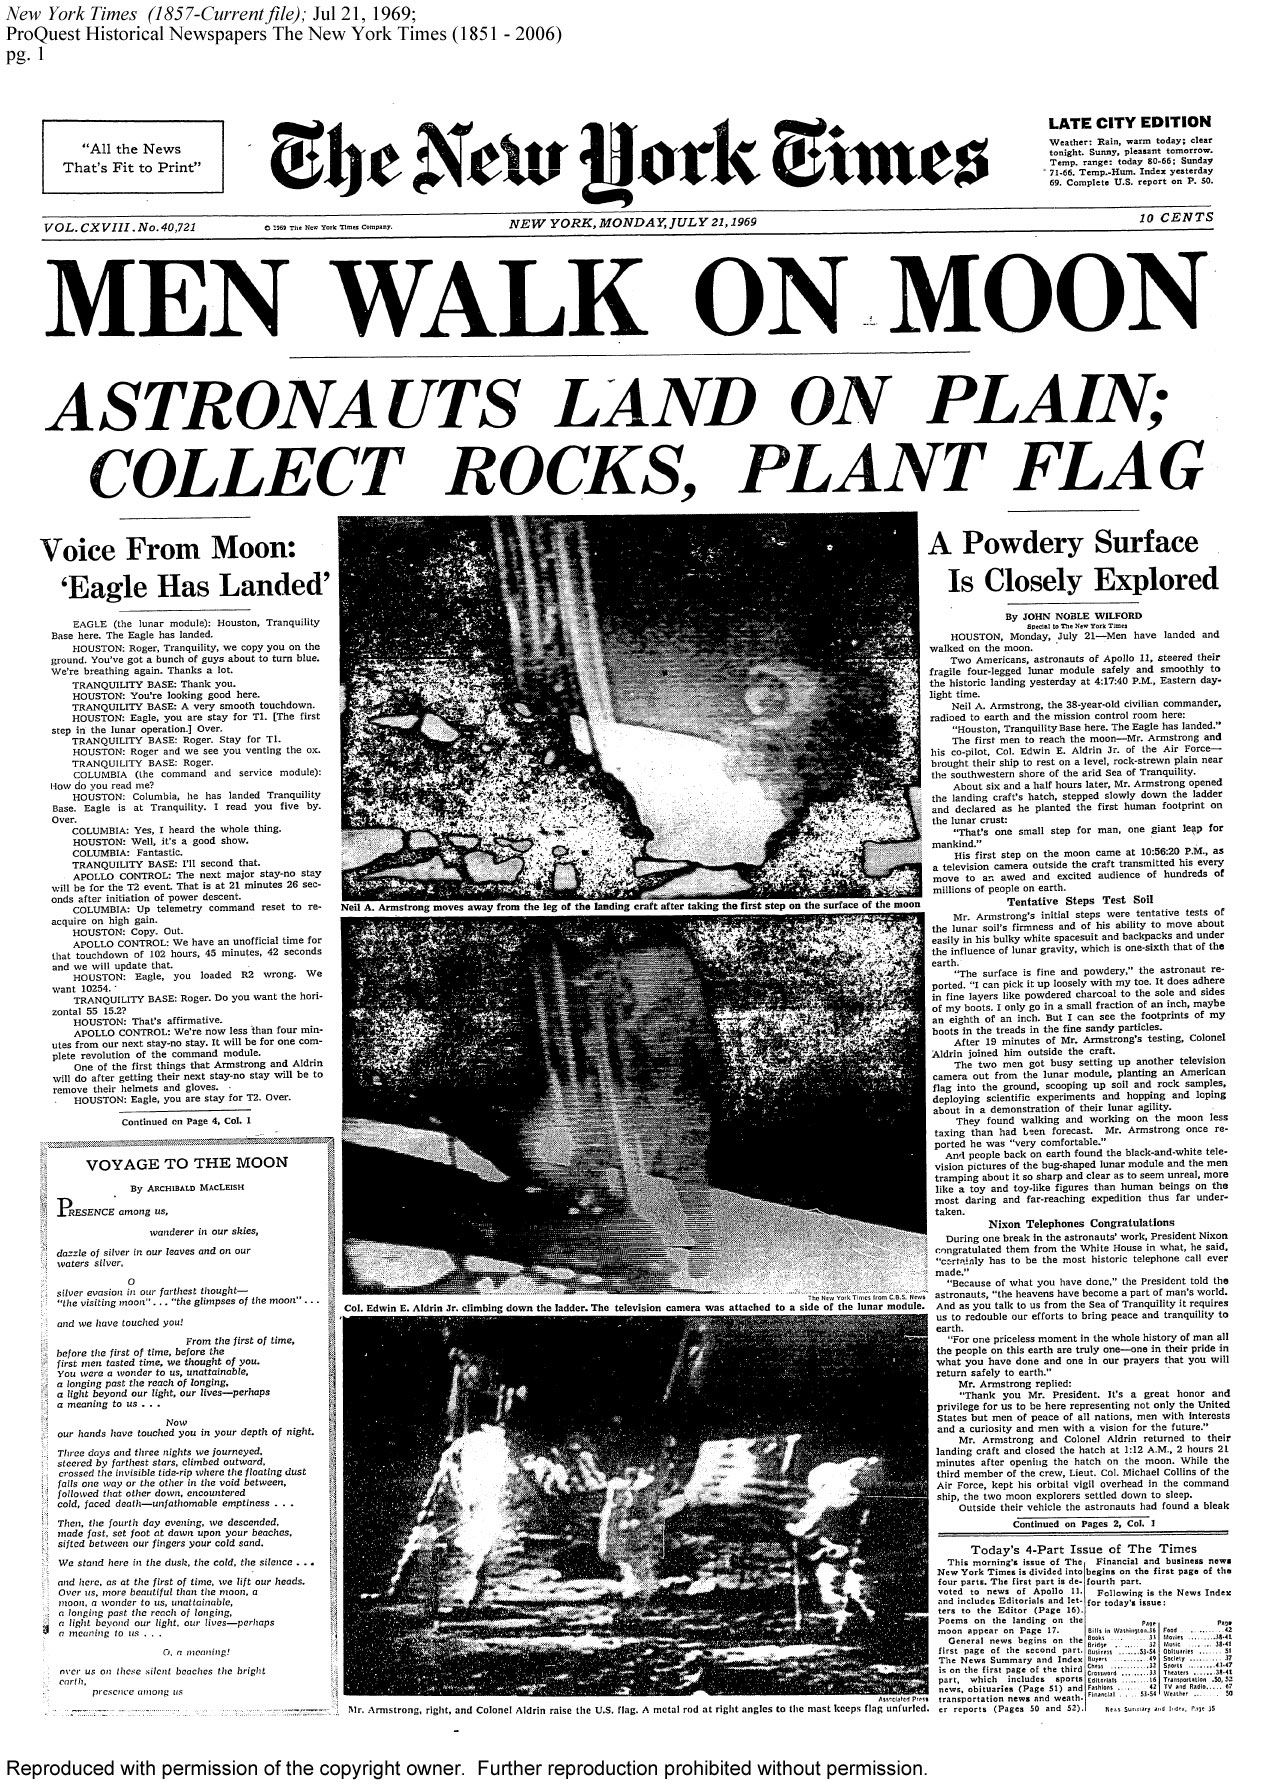 Men Walk On Moon, 1969.  Buzz Aldrin & Neil Armstrong.  The whole world watched! I was at a summer job after my first year of college and everything shut down so we could all watch the launch together.